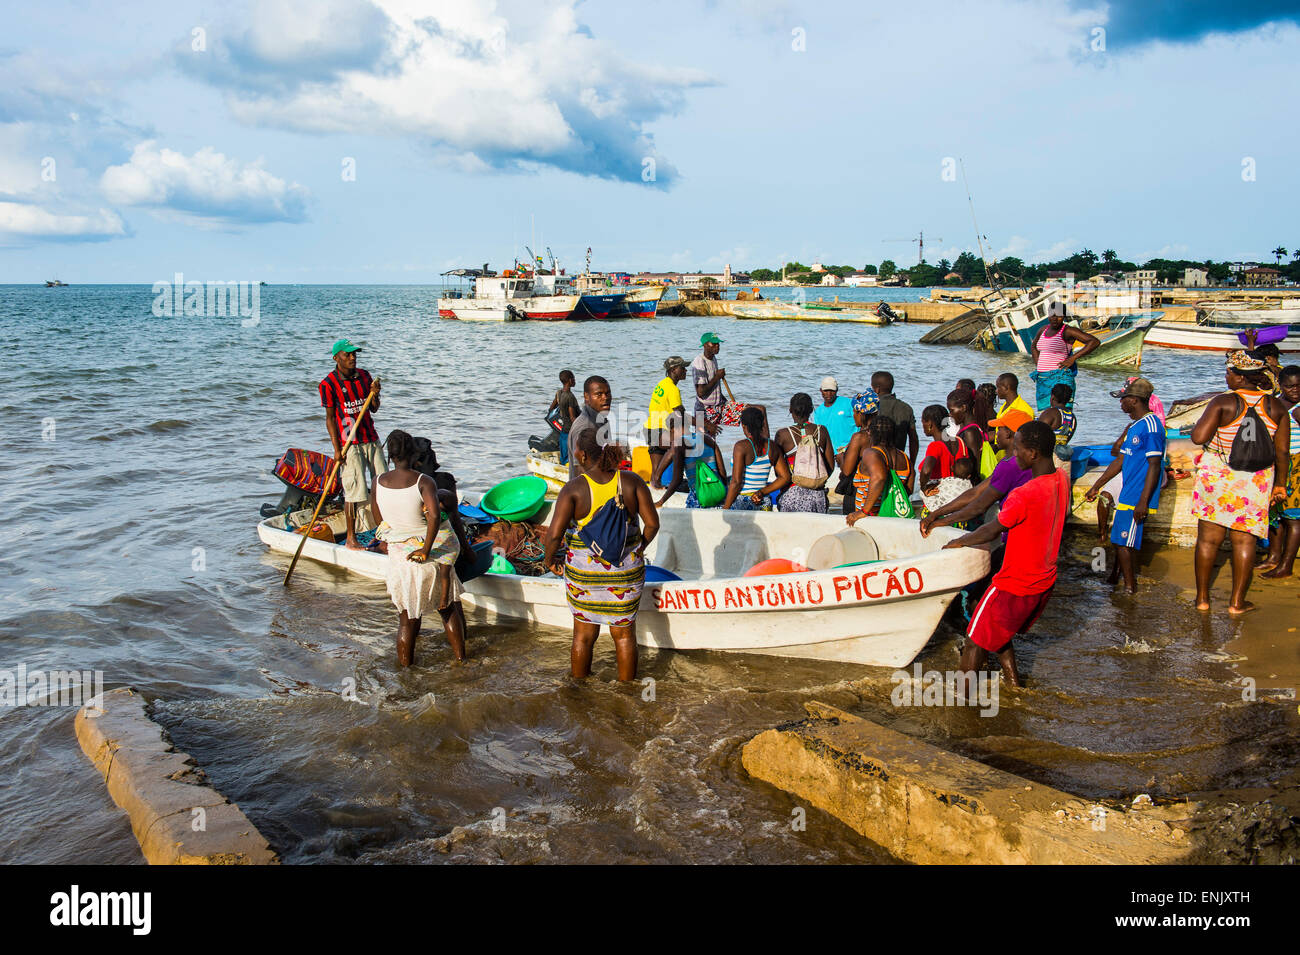 Fishermen selling their fresh fish, city of Sao Tome, Sao Tome and Principe, Atlantic Ocean, Africa - Stock Image